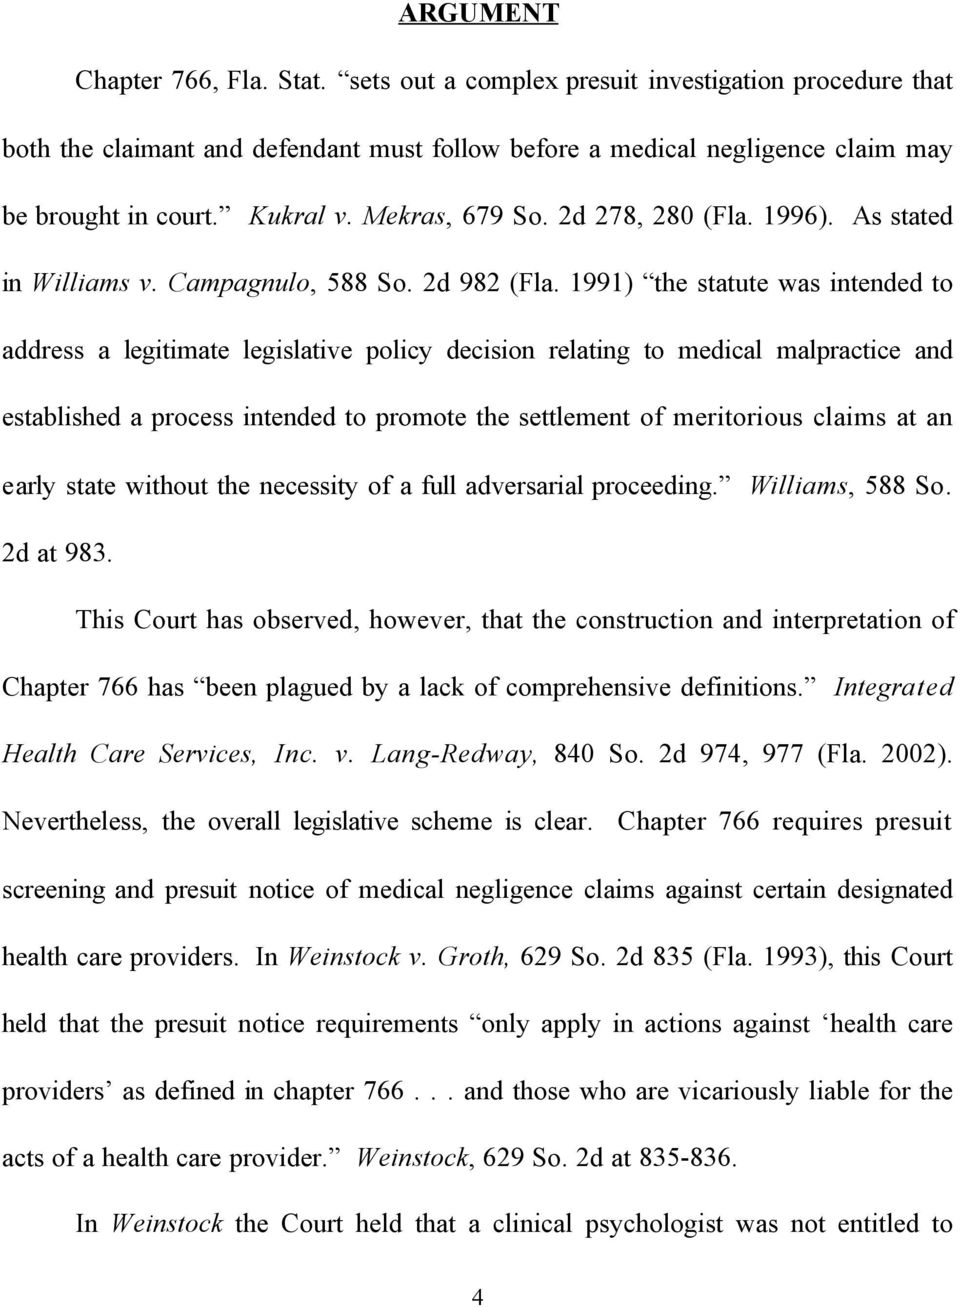 1991) the statute was intended to address a legitimate legislative policy decision relating to medical malpractice and established a process intended to promote the settlement of meritorious claims